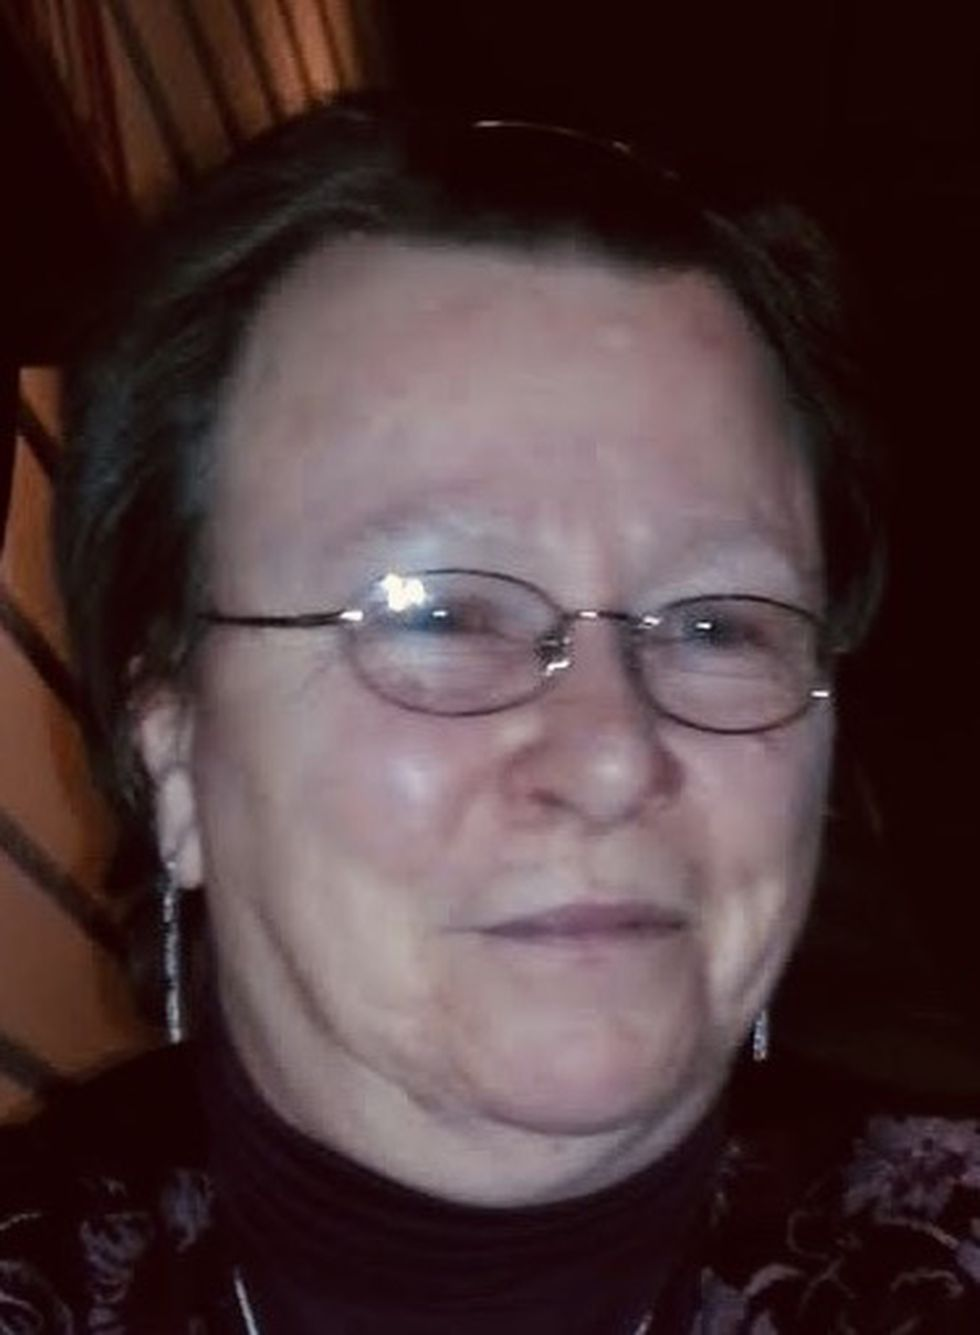 Kendra J. Green, 68, formerly of Smithville, died unexpectedly at her home in Vernon, NY on...